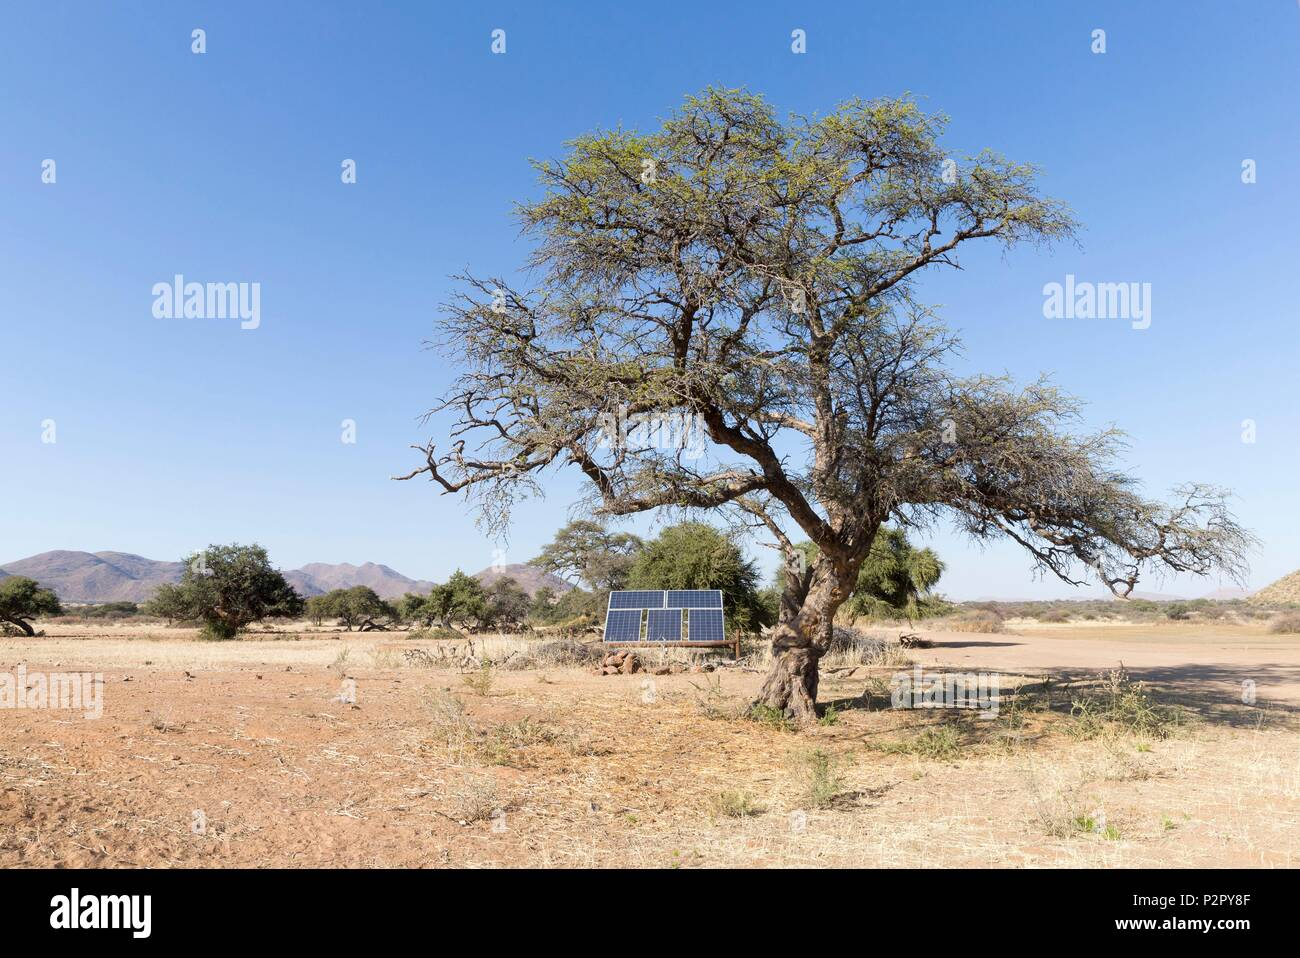 South Africa, Kalahari Desert, solar panels to power a pump that brings water into a water hole - Stock Image